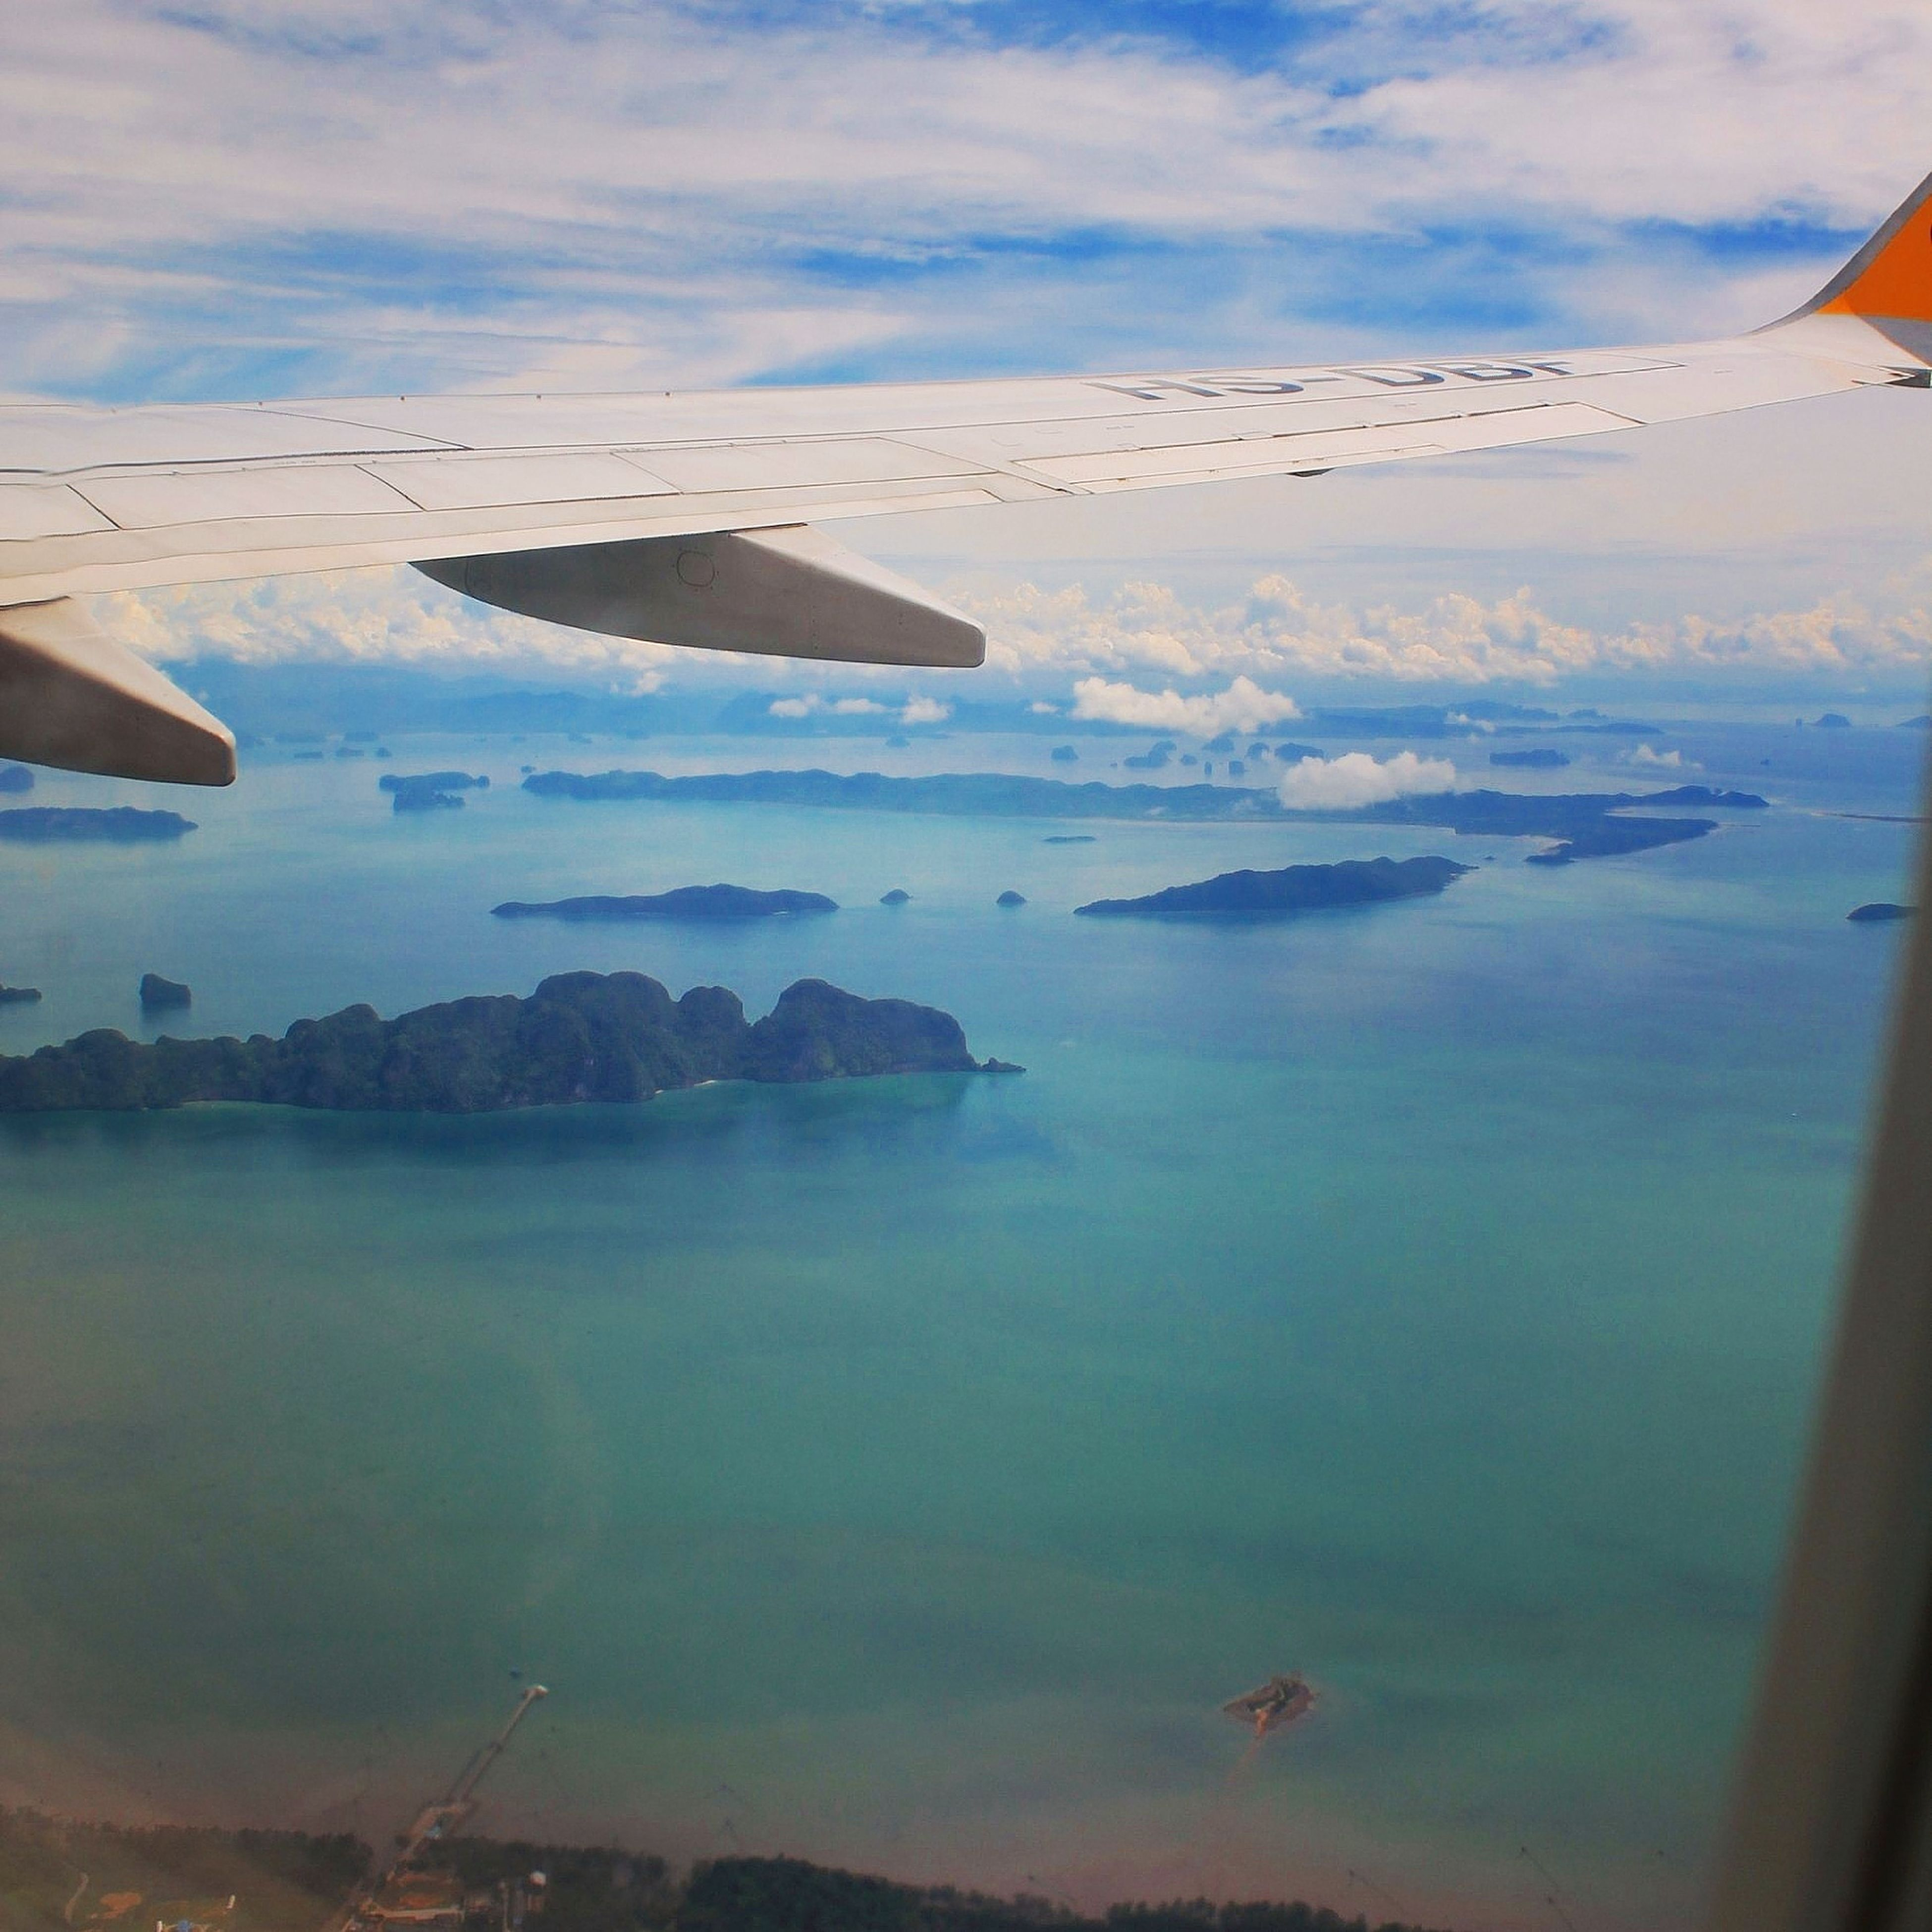 flying, transportation, mode of transport, airplane, air vehicle, sea, sky, mid-air, water, aerial view, aircraft wing, cloud - sky, scenics, travel, part of, nature, beauty in nature, cropped, cloud, nautical vessel